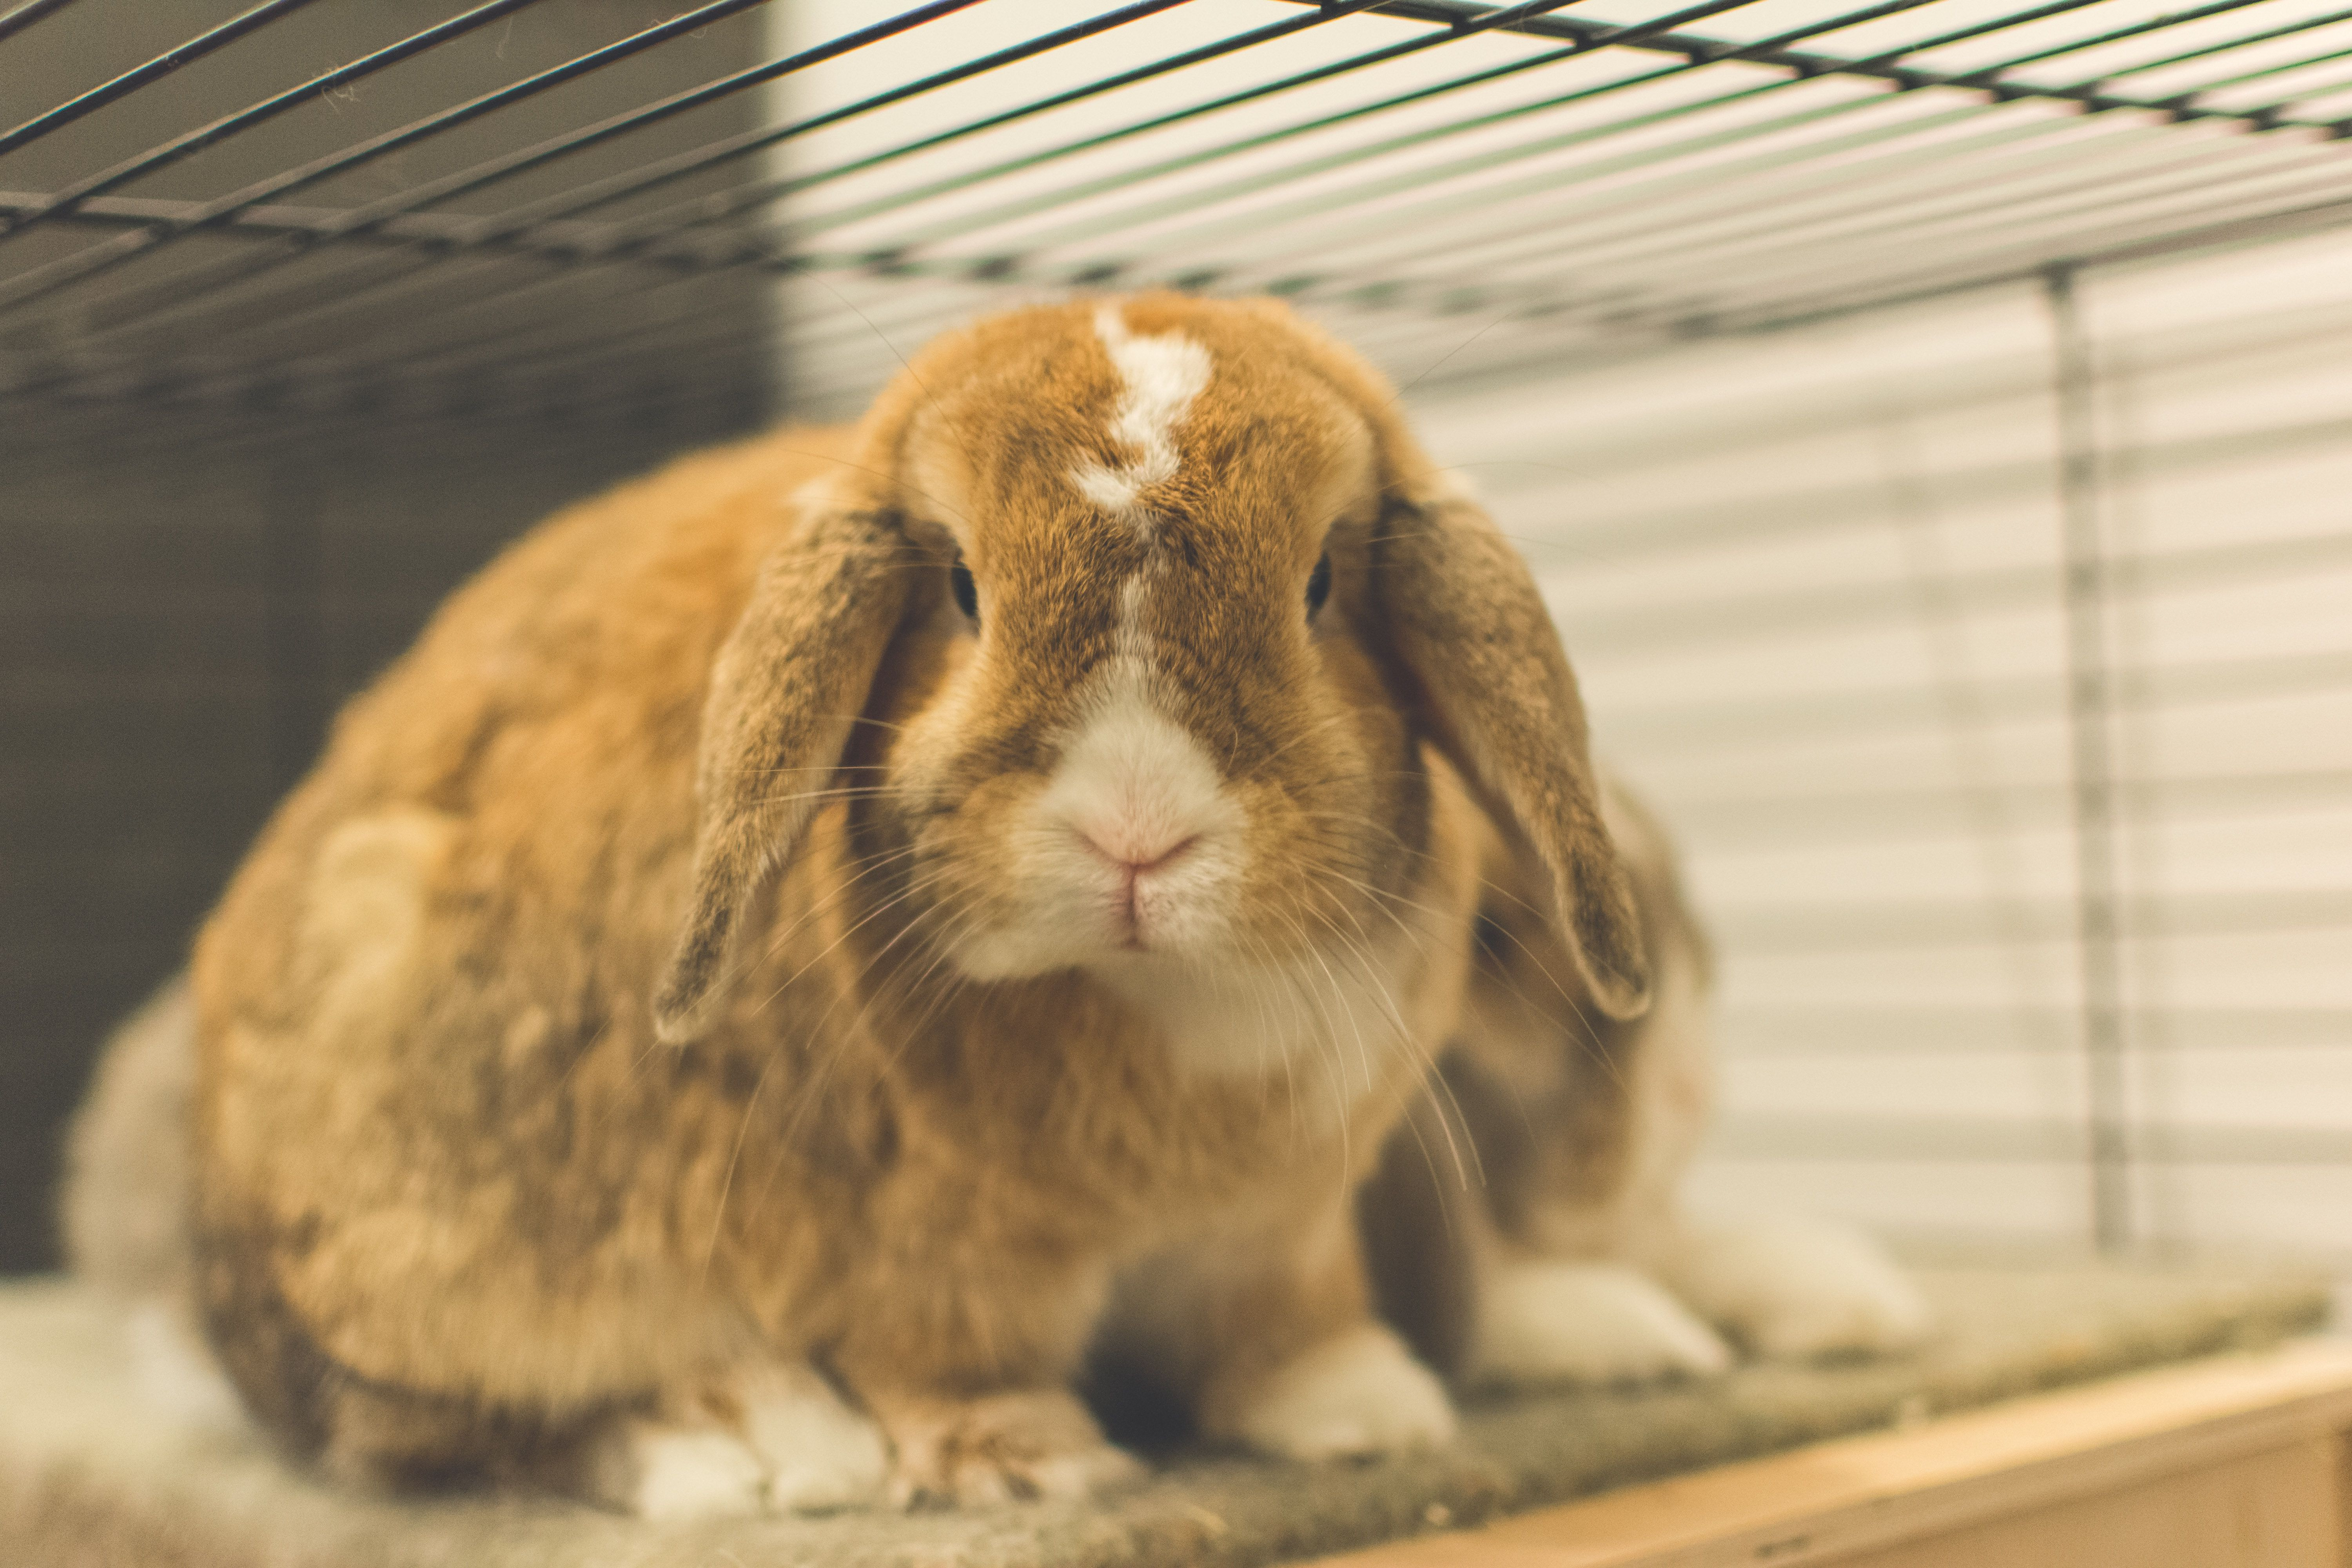 Are Avon, Mary Kay and Estee Lauder Cruelty-Free Brands?